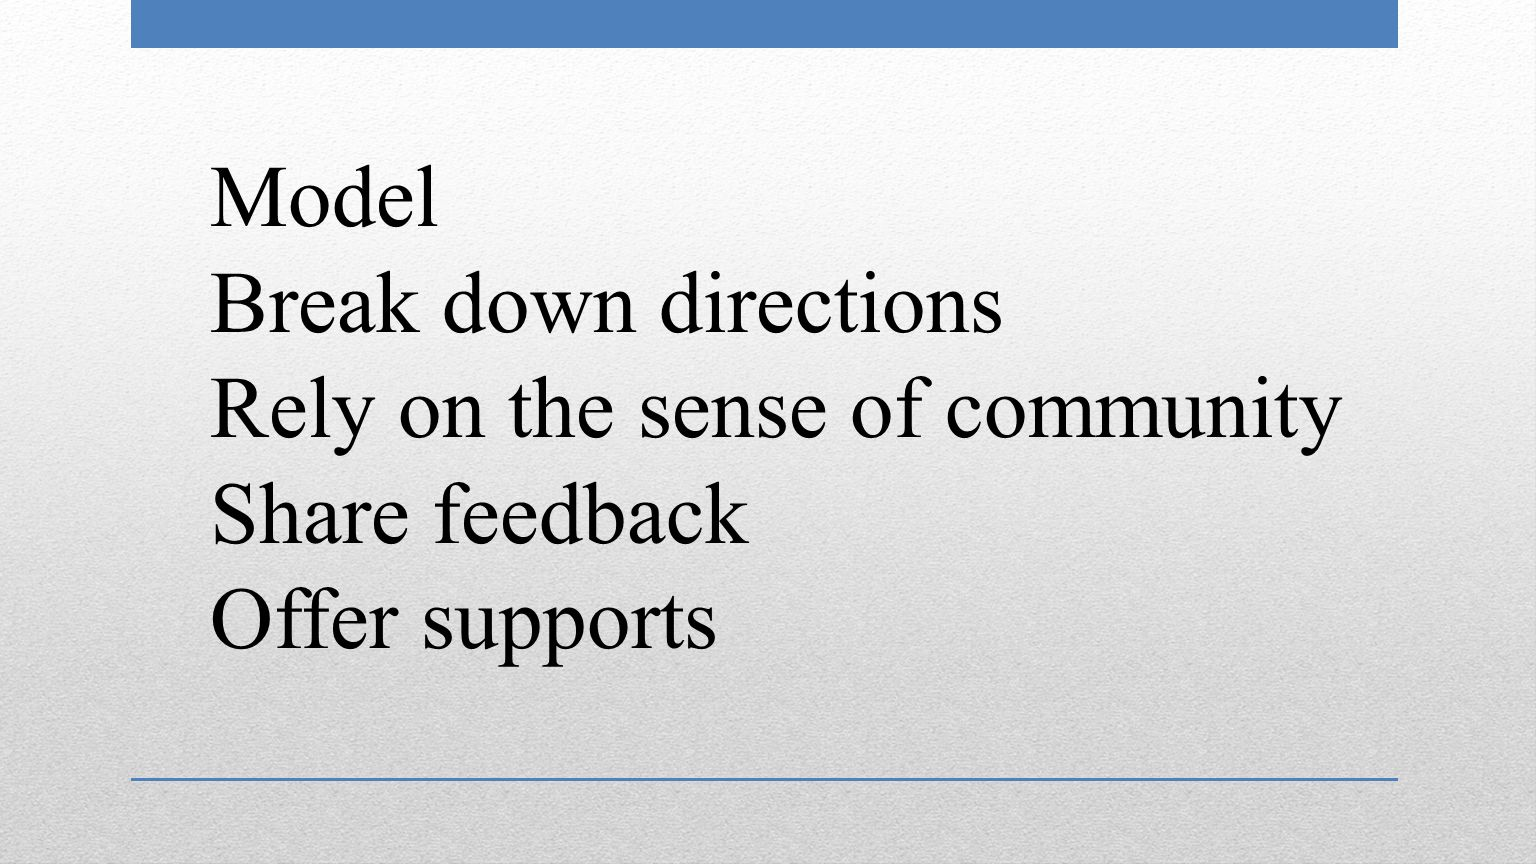 Model Break down directions Rely on the sense of community Share feedback Offer supports